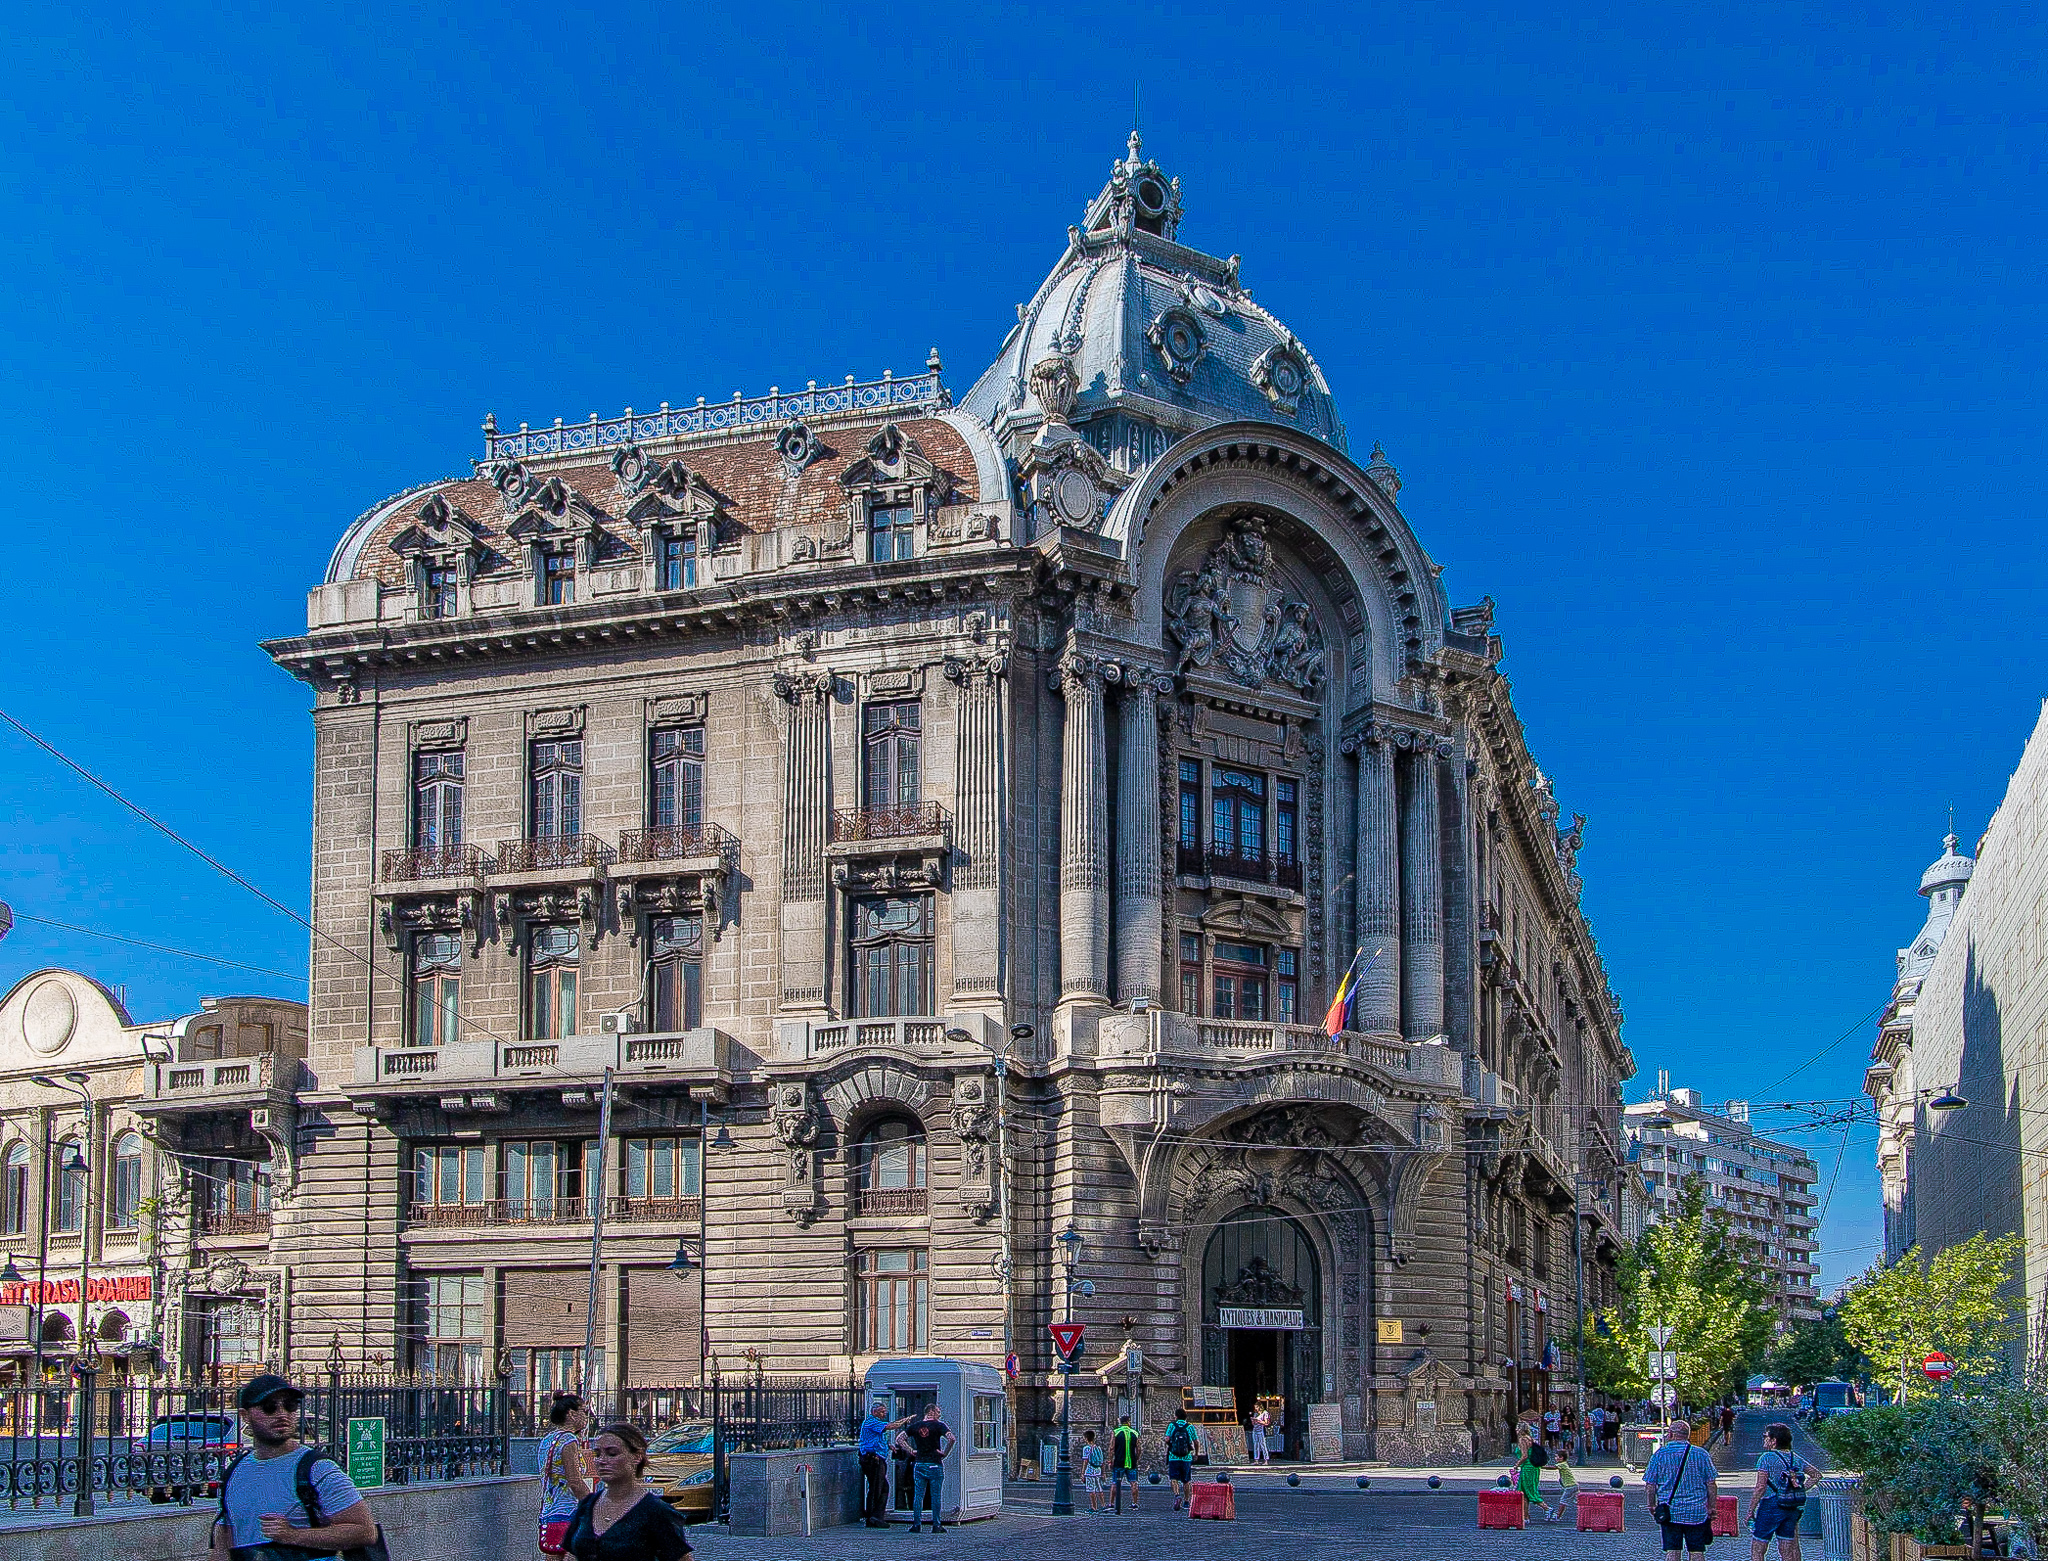 The Stock Exchange Palace/Library